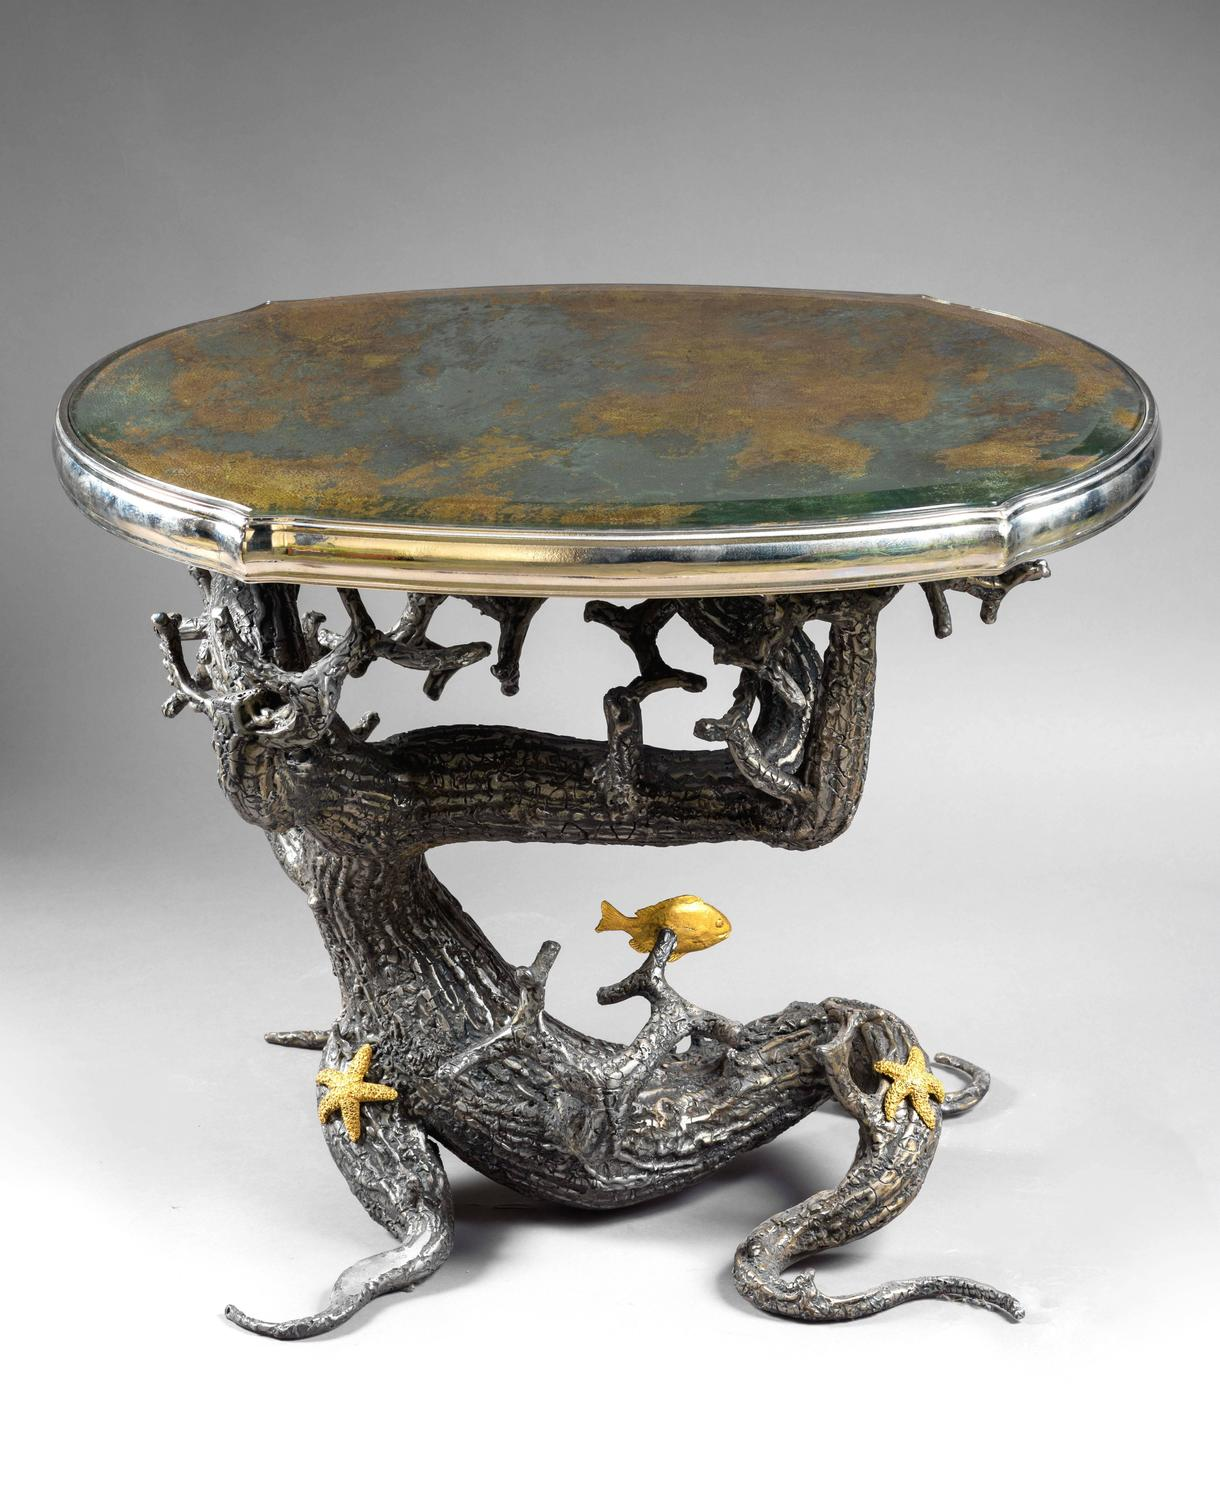 Brazier Jones 2013 Unique Pair Of Coffee Tables For Sale At 1stdibs